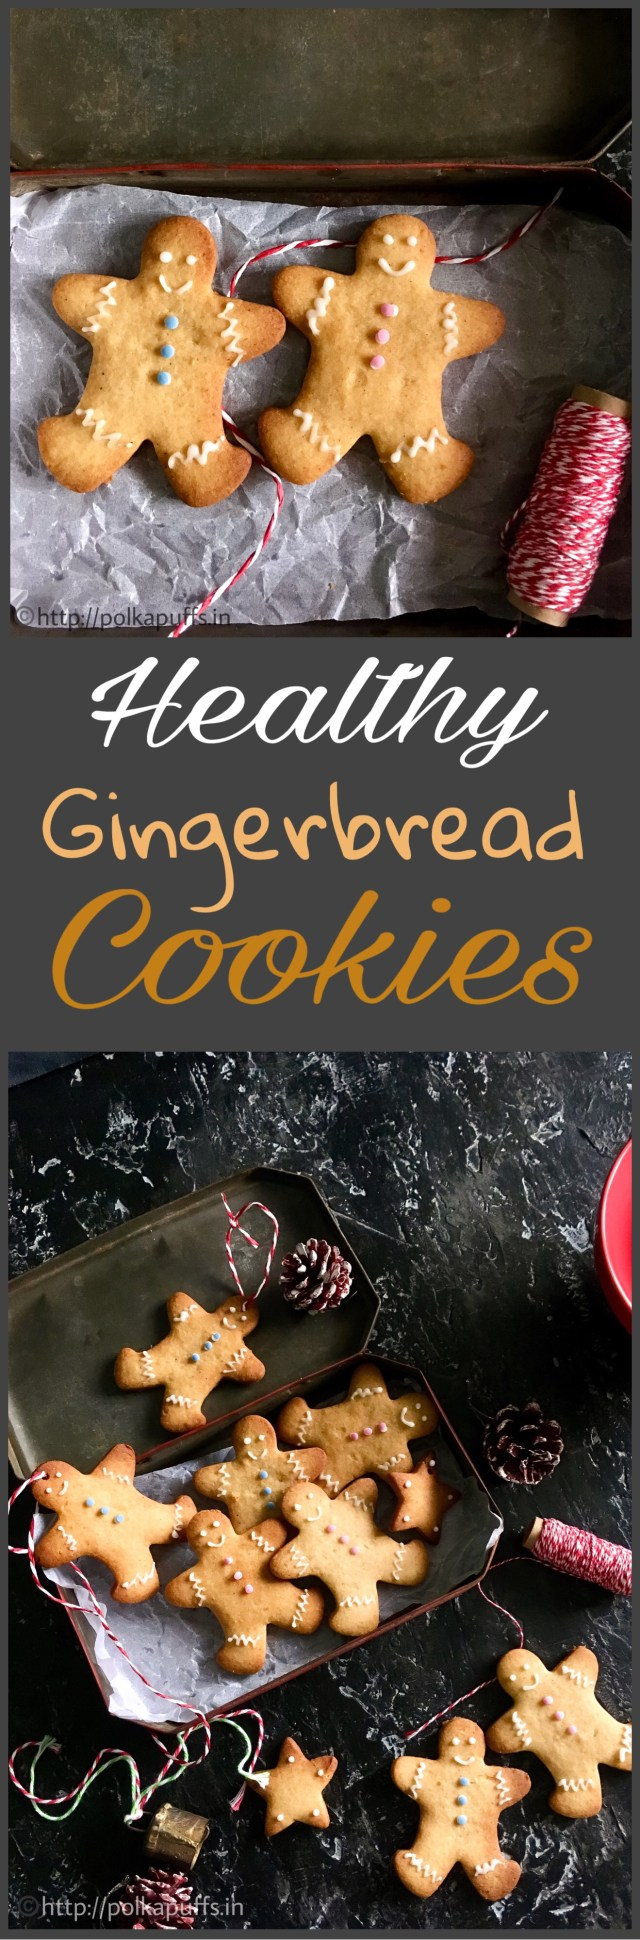 Healthy gingerbread cookies egg free